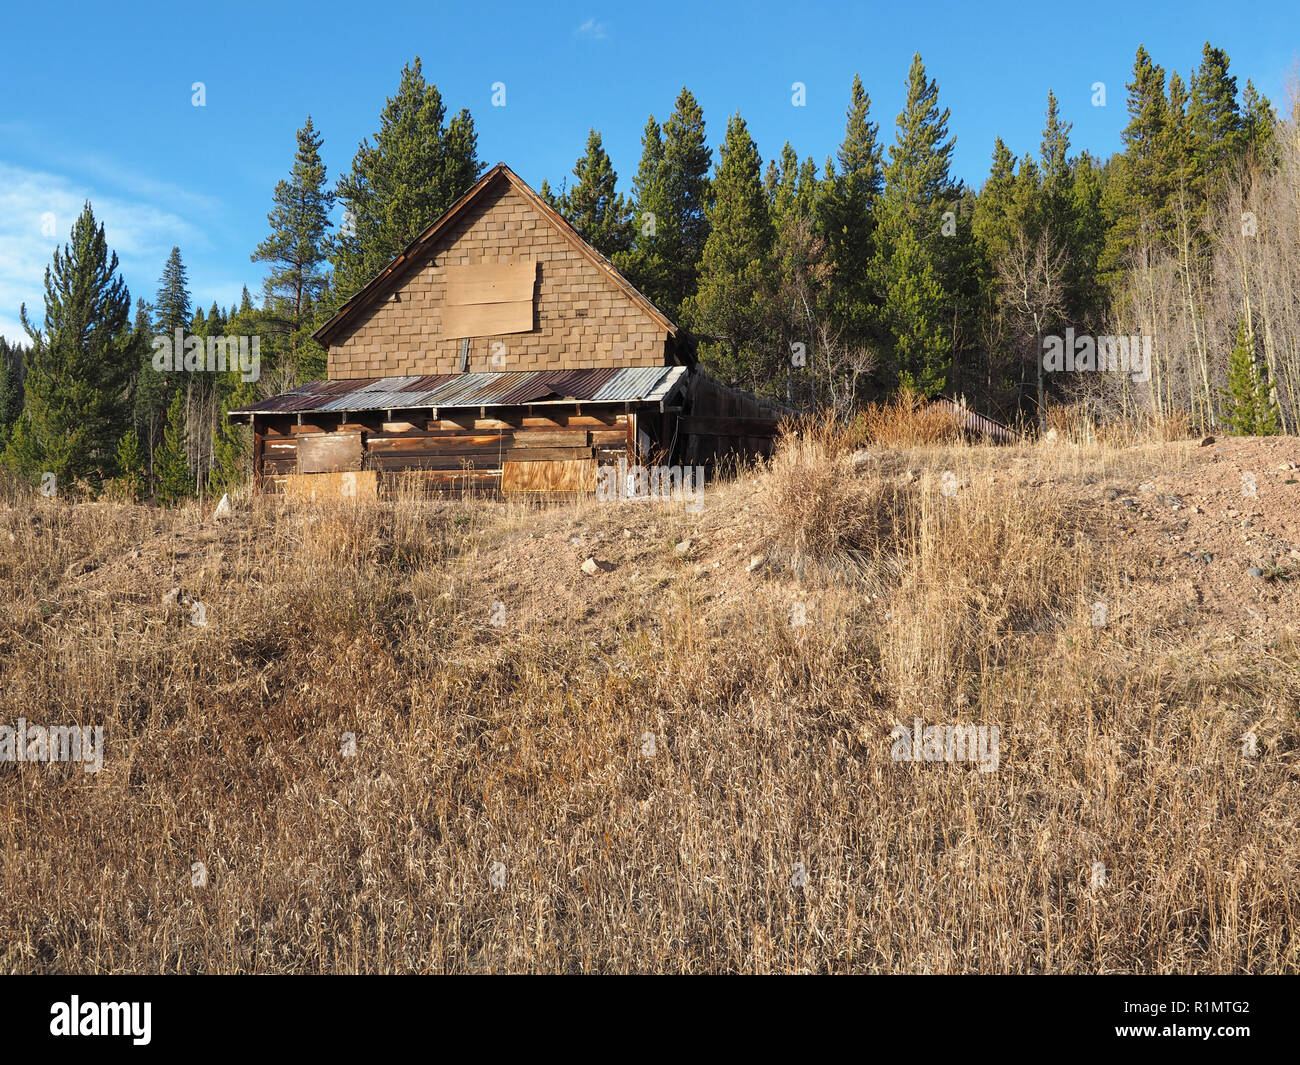 An old mine building near Breckenridge Colorado.  The photo was taken in the late afternoon when the sun was getting low in the sky. - Stock Image